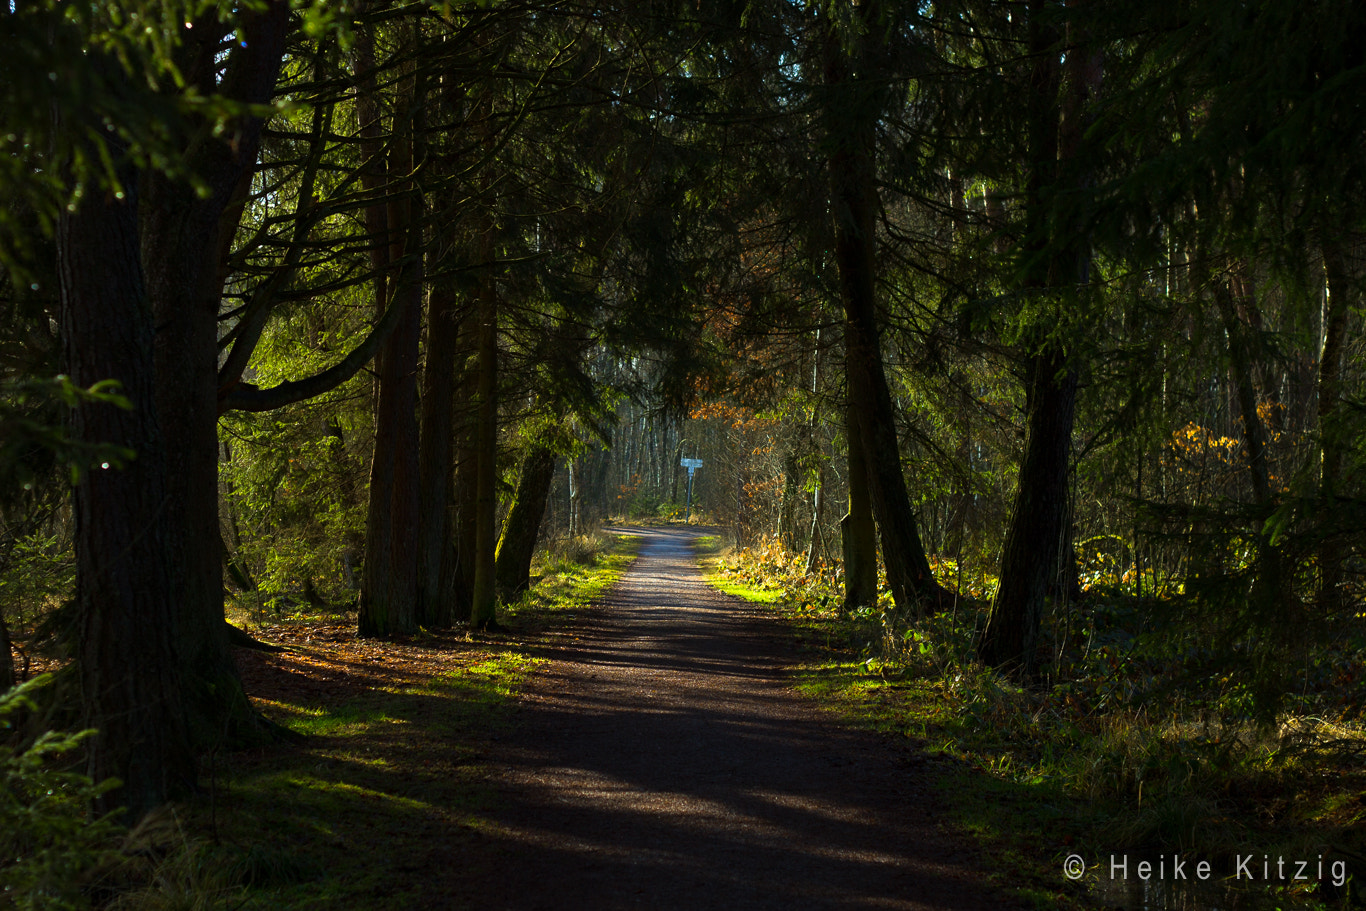 Photograph Way in Moss in Schwenningen Germany by Heike Kitzig on 500px